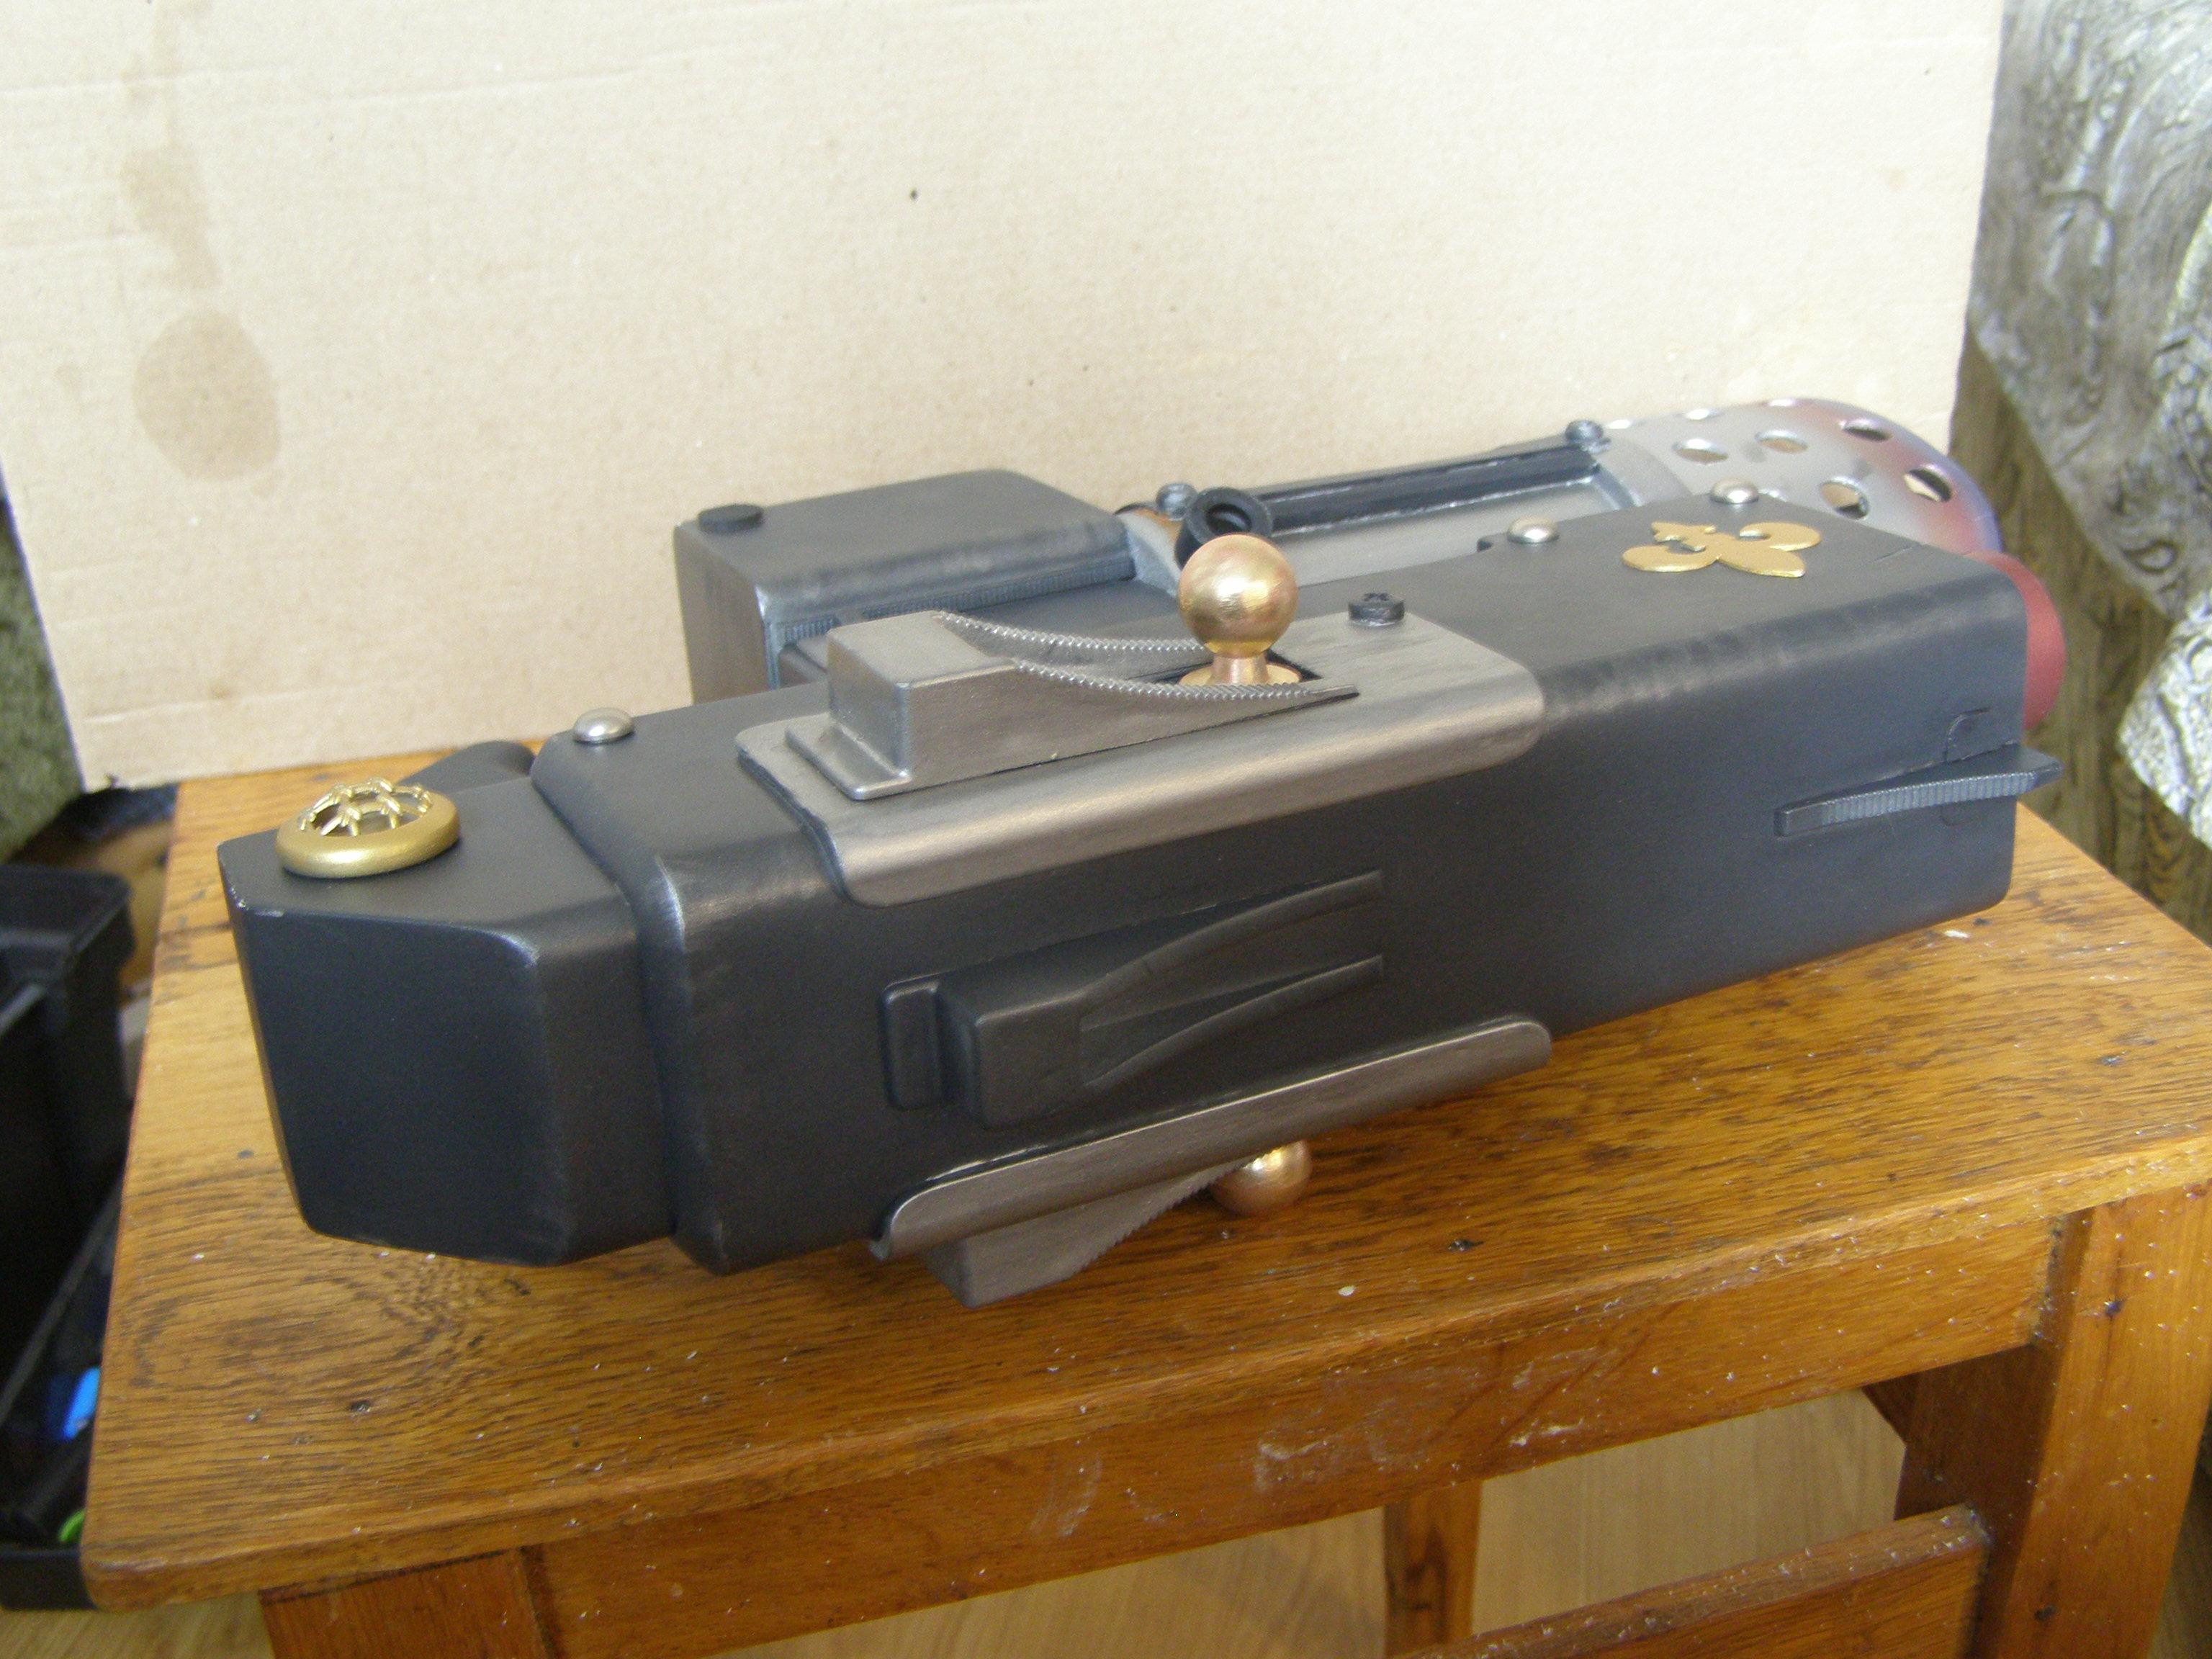 Bolter, Combibolter, Cosplay, Imperial Weapon, Scratch Bild